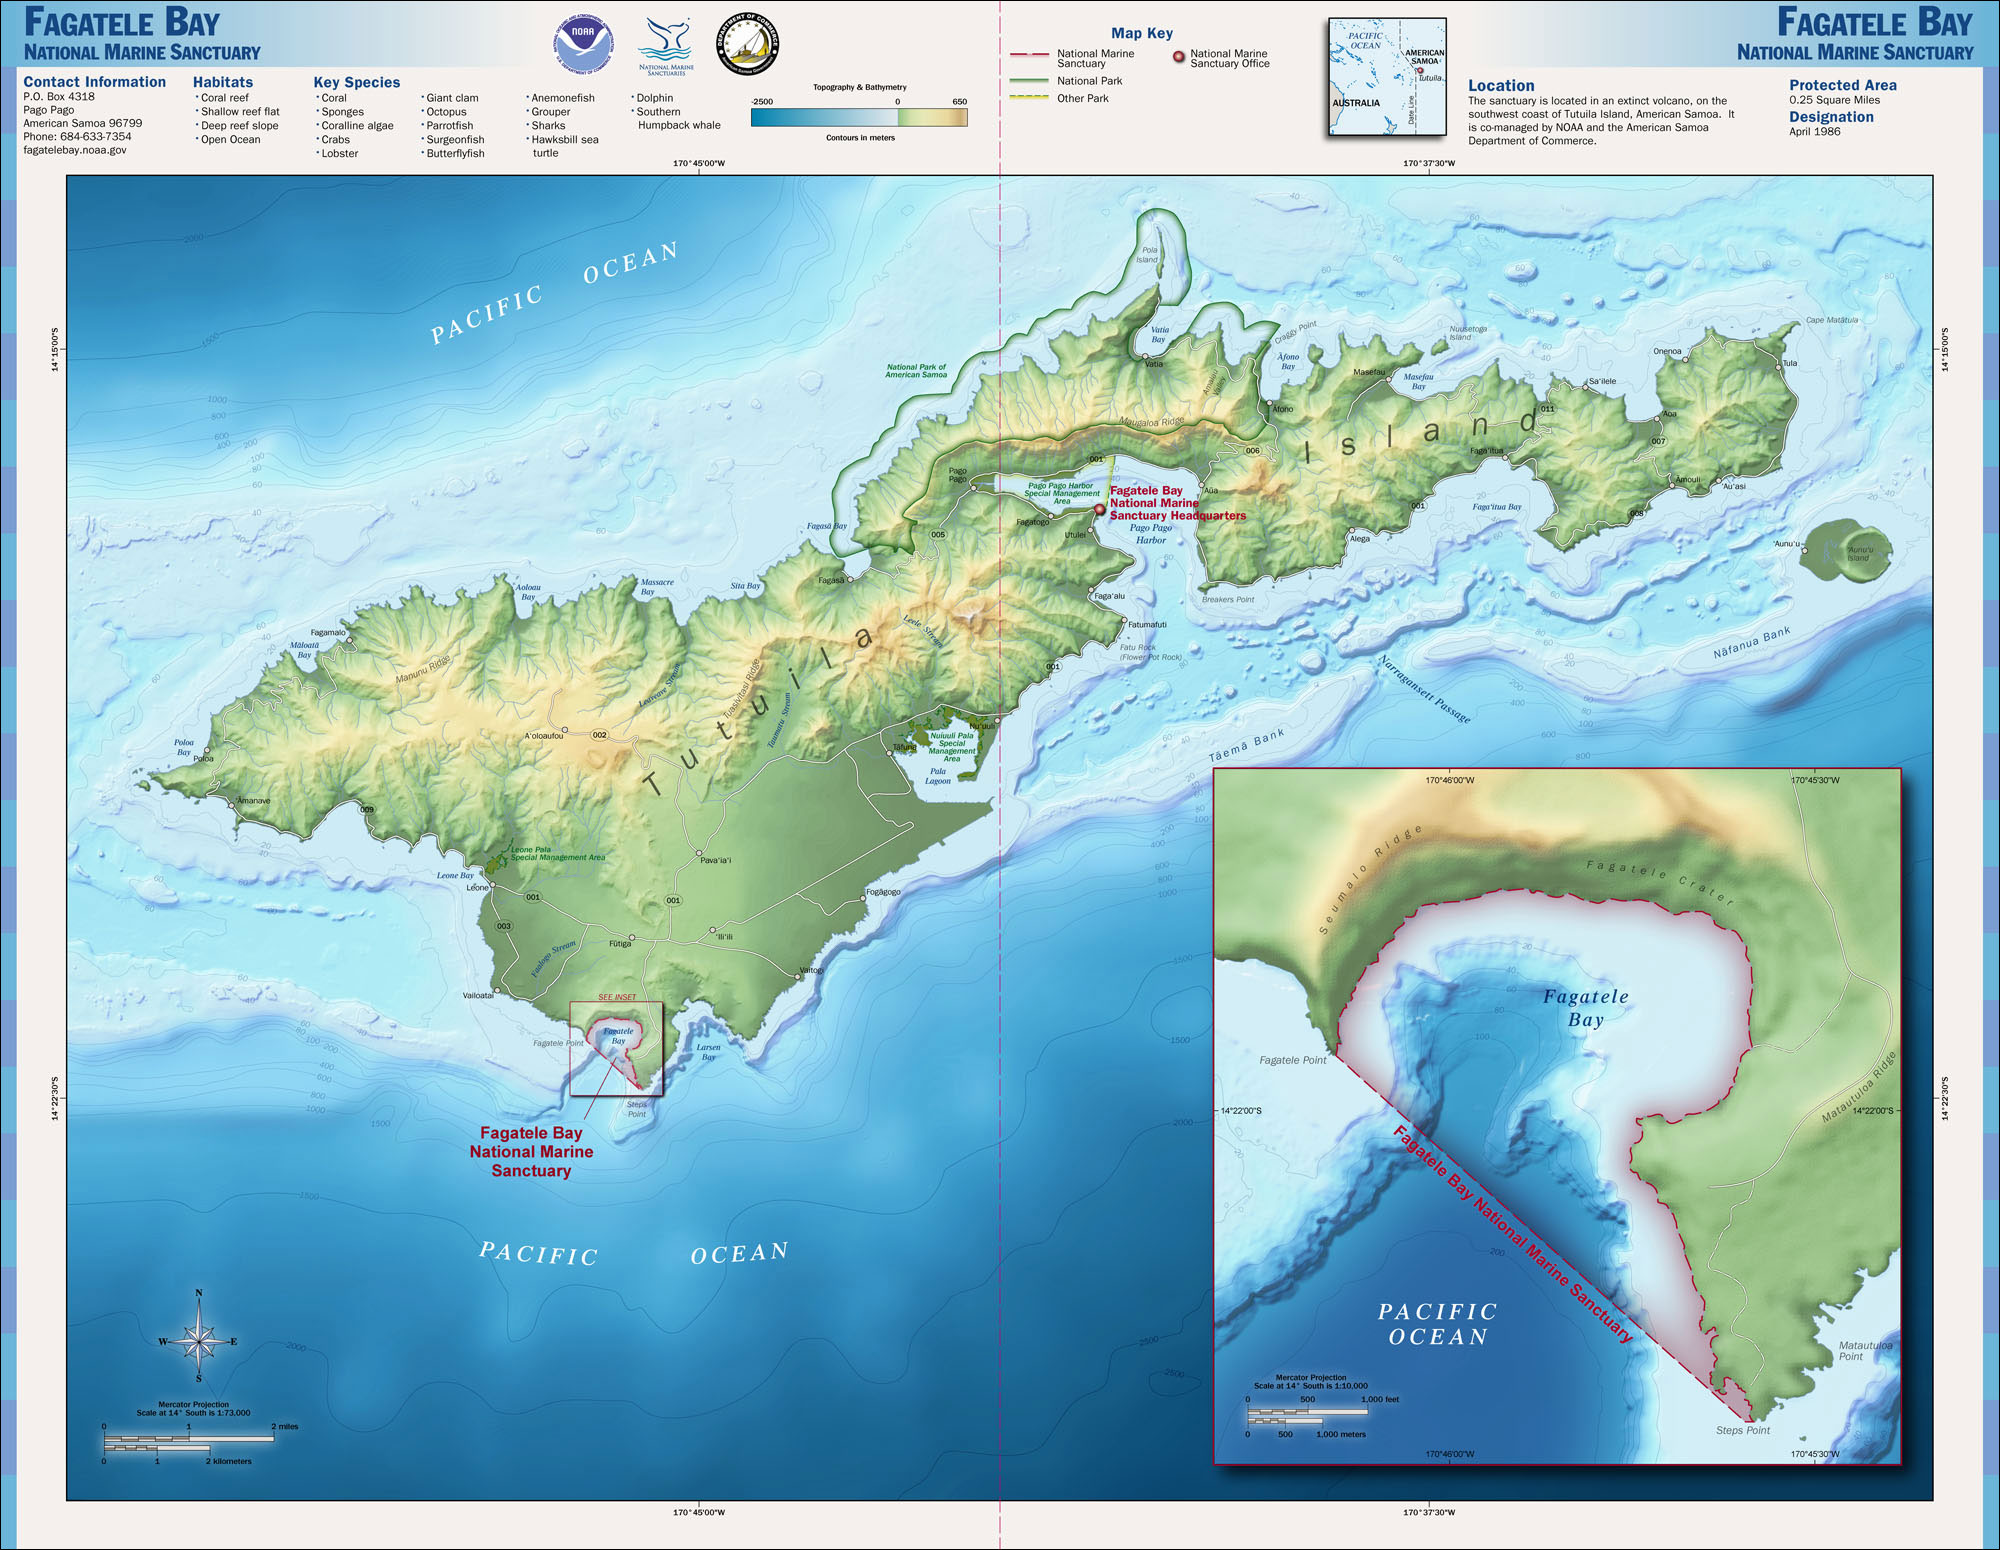 fagatele bay national marine sanctuary map american samoa mappery